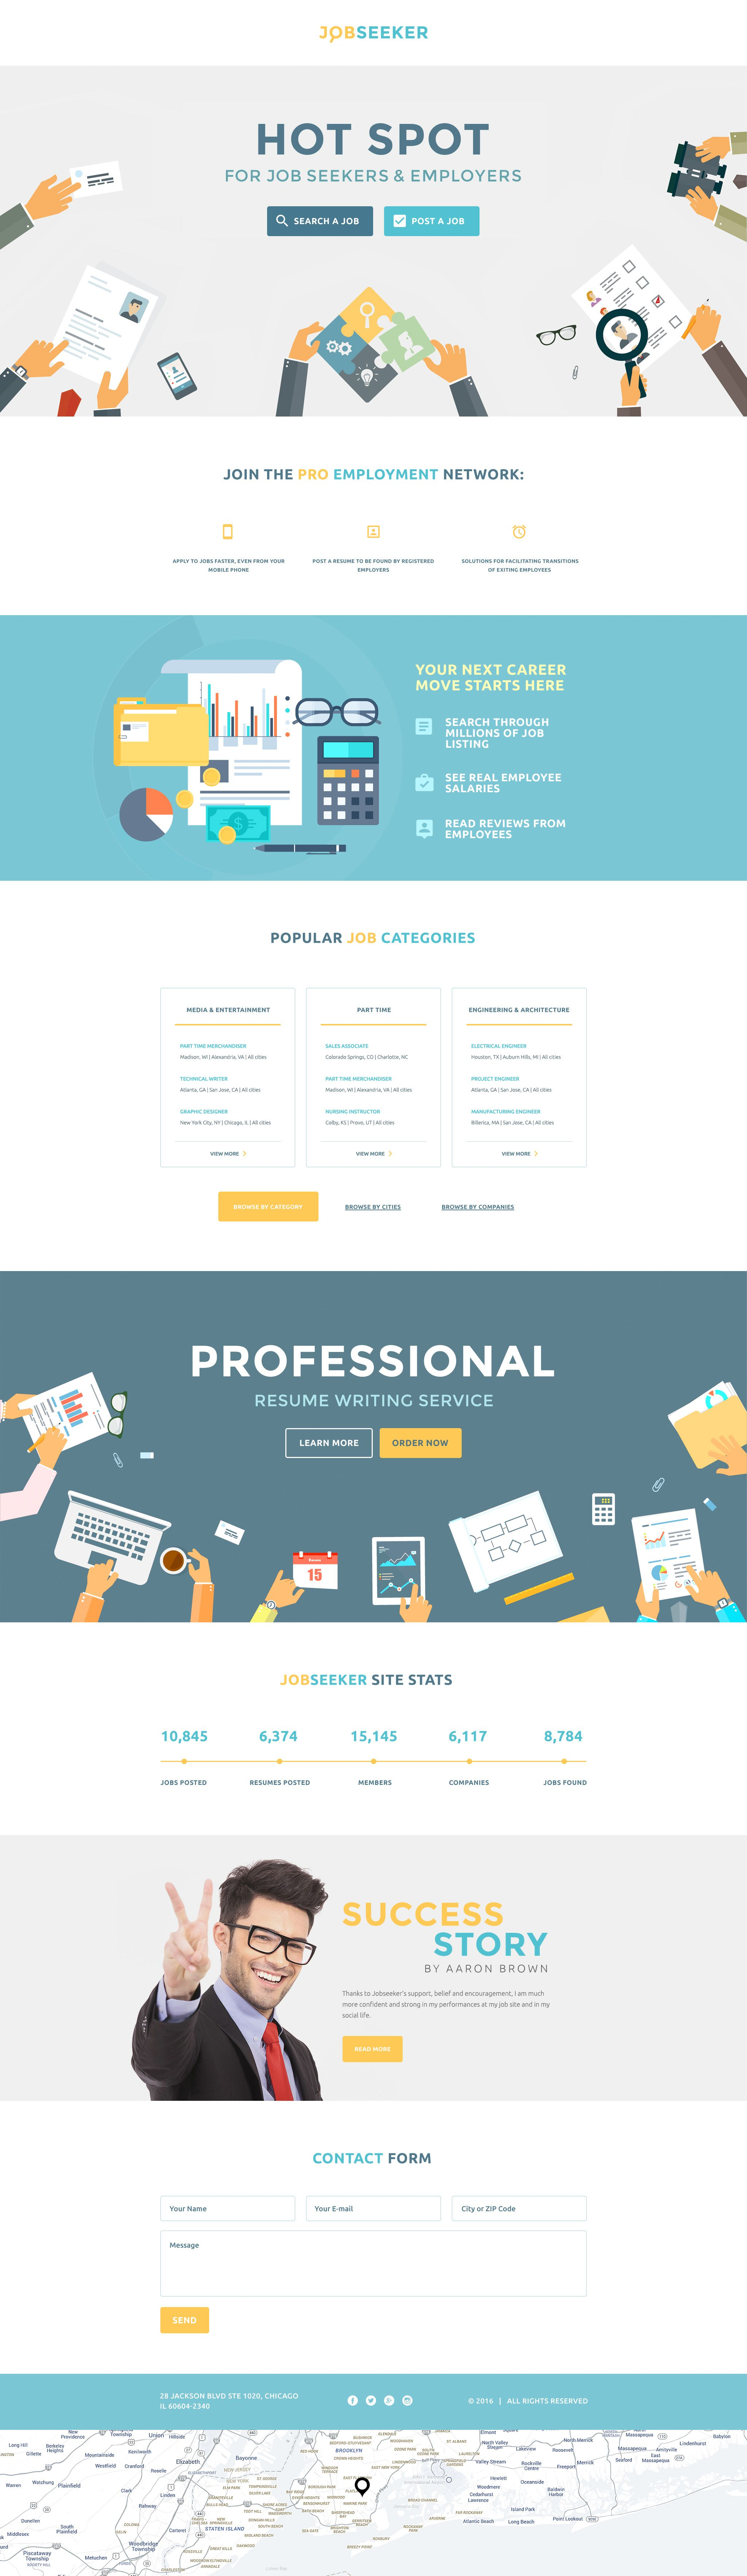 job seekers landing page template web design jobs, system administrator career objective novoresume templates free download for an administrative assistant